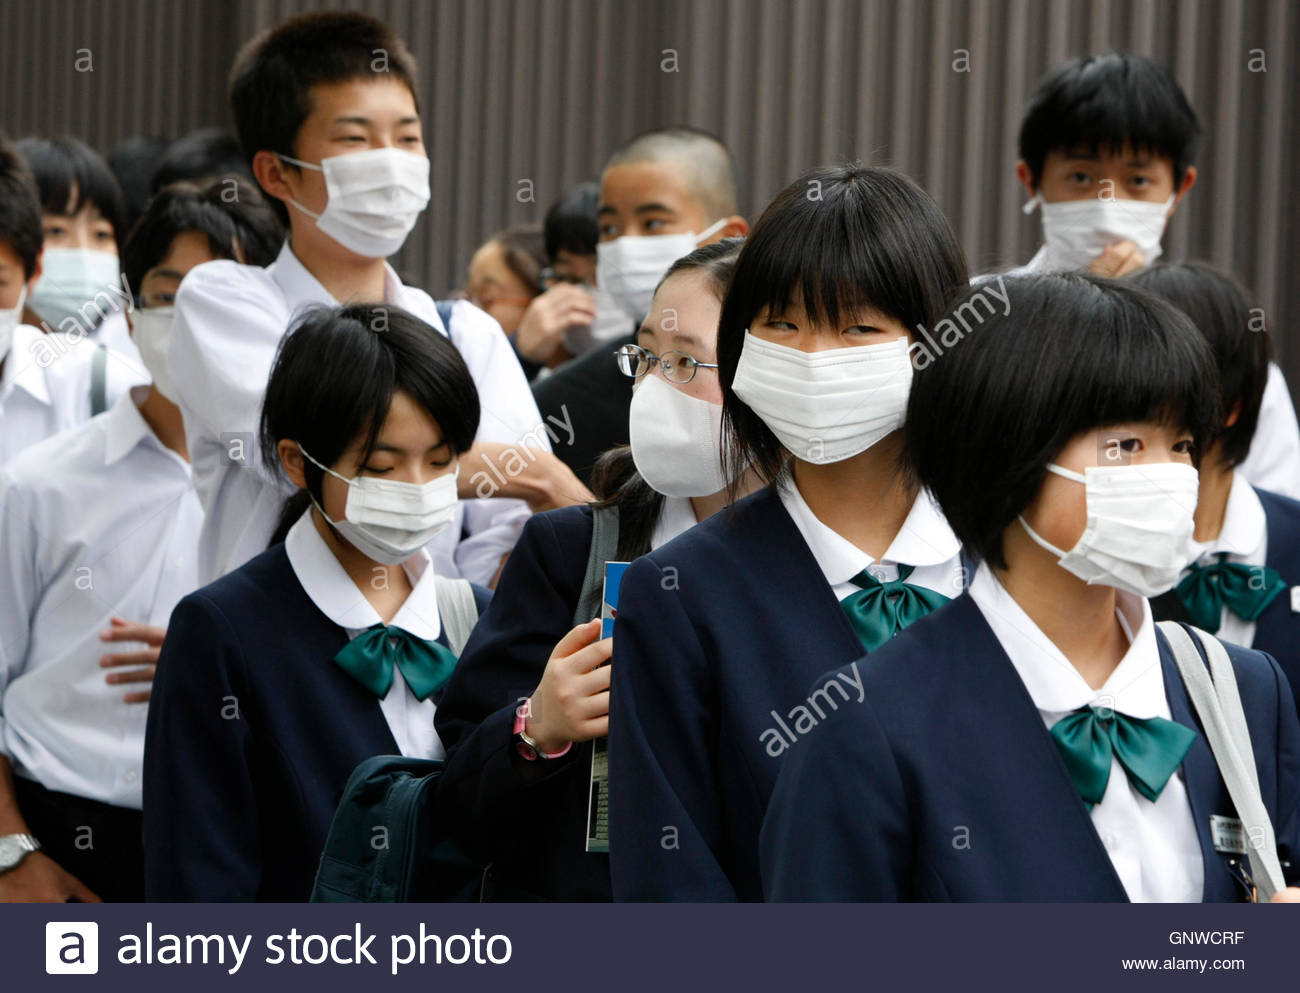 ese junior high school students wear face masks as they ese junior high school students wear face masks as they the parliament in tokyo